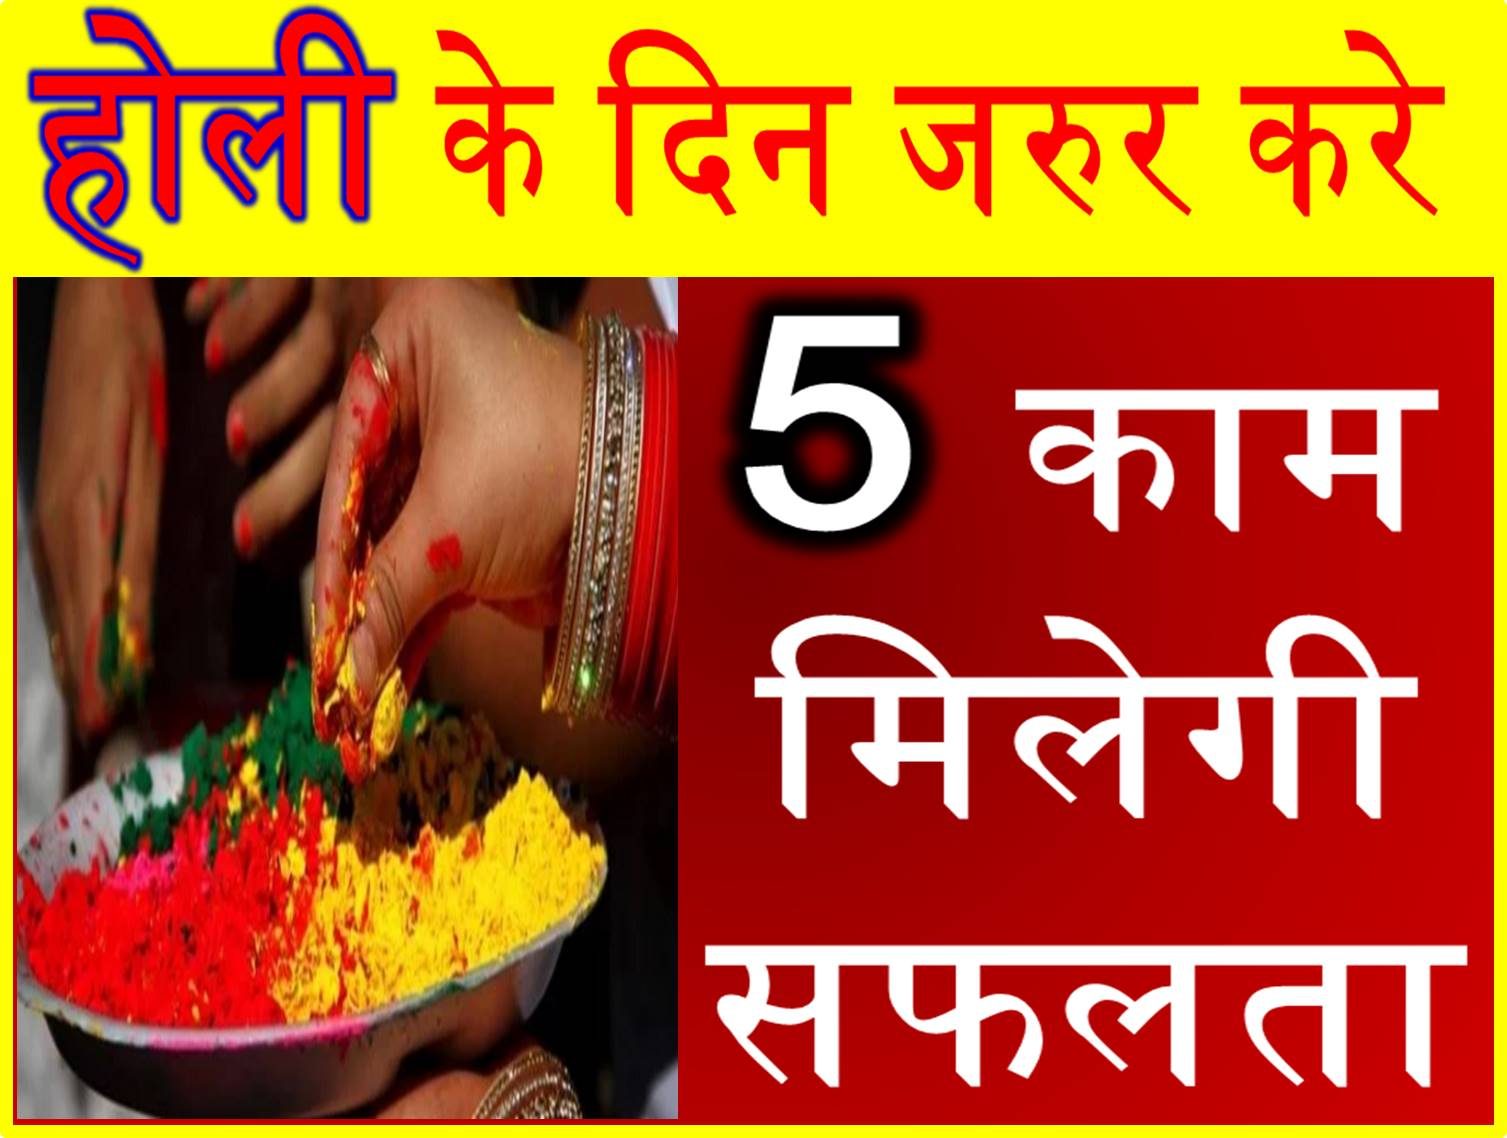 holi festival essay in hindi upchar nuskhe 2332235223702352 2325235223752306 2361237923542368 235023752306 23512375 232523662350 ways to celebrate an ecofriendly holi